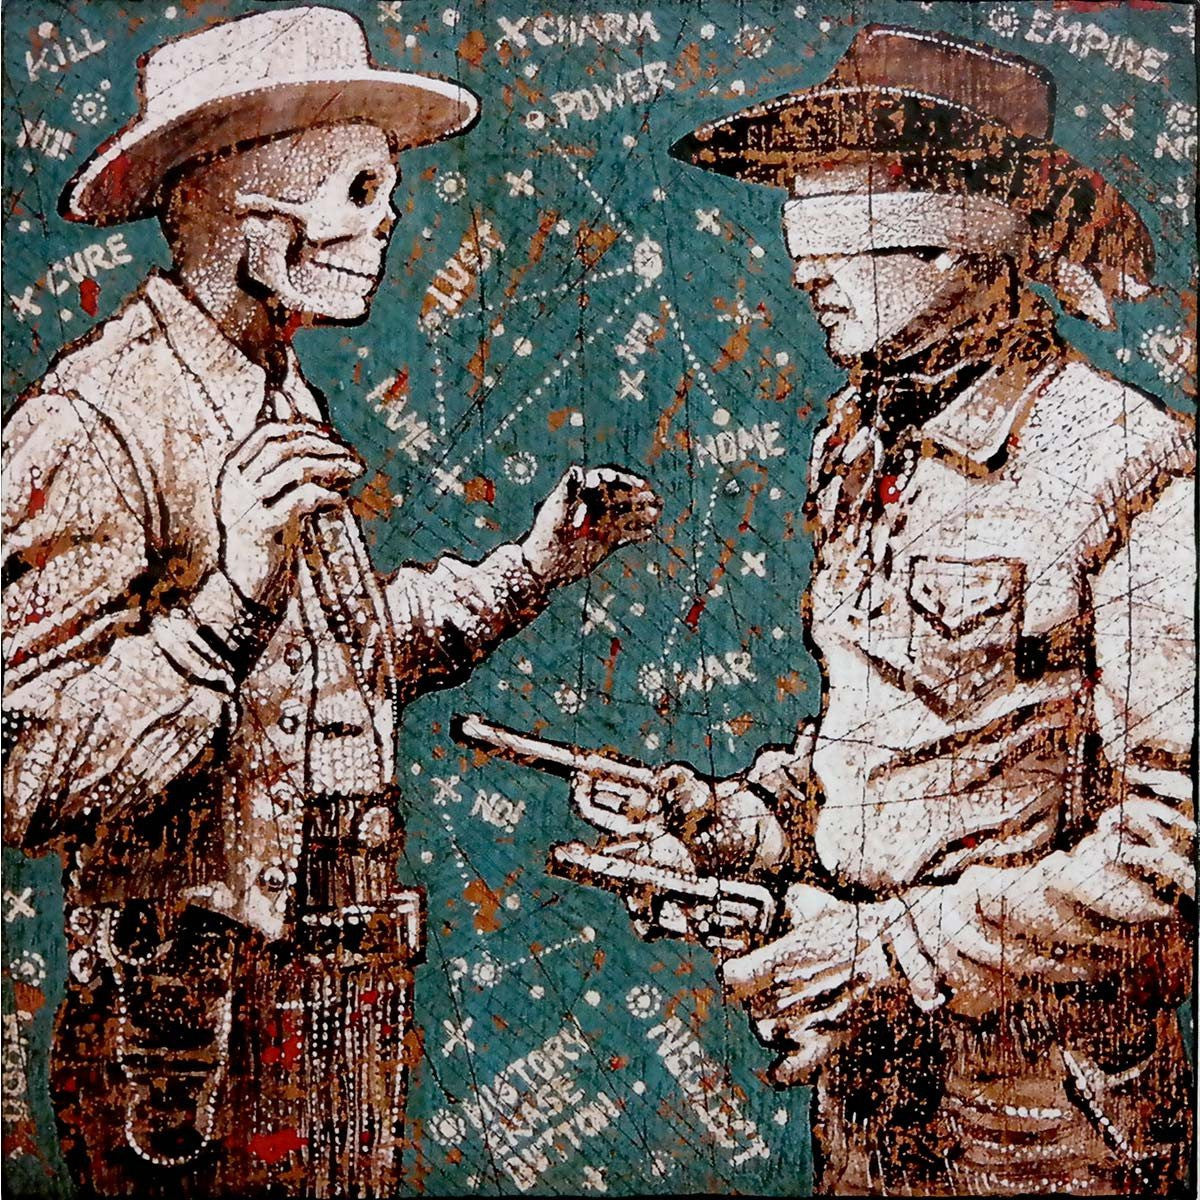 Starmap Cowboys - Jon Langford - Yard Dog Art